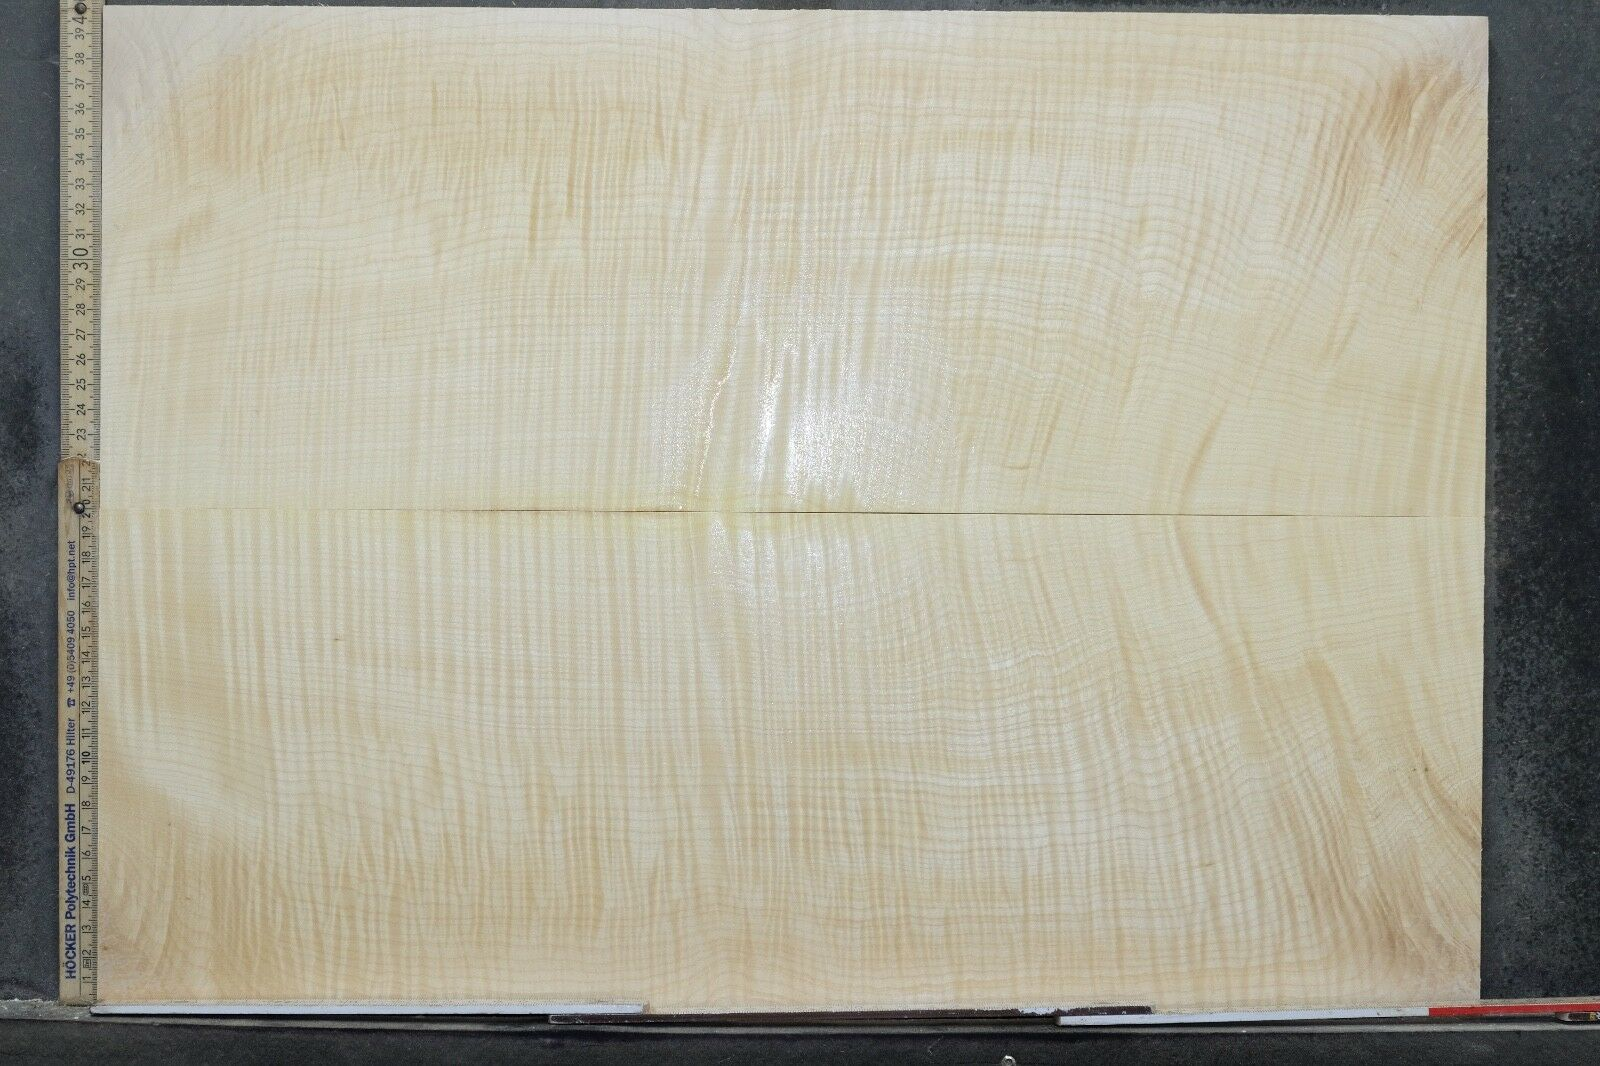 Tonewood Riegel Ahorn Flamed Maple 11 mm Aufleimer Guitar Tonholz Droptop 381